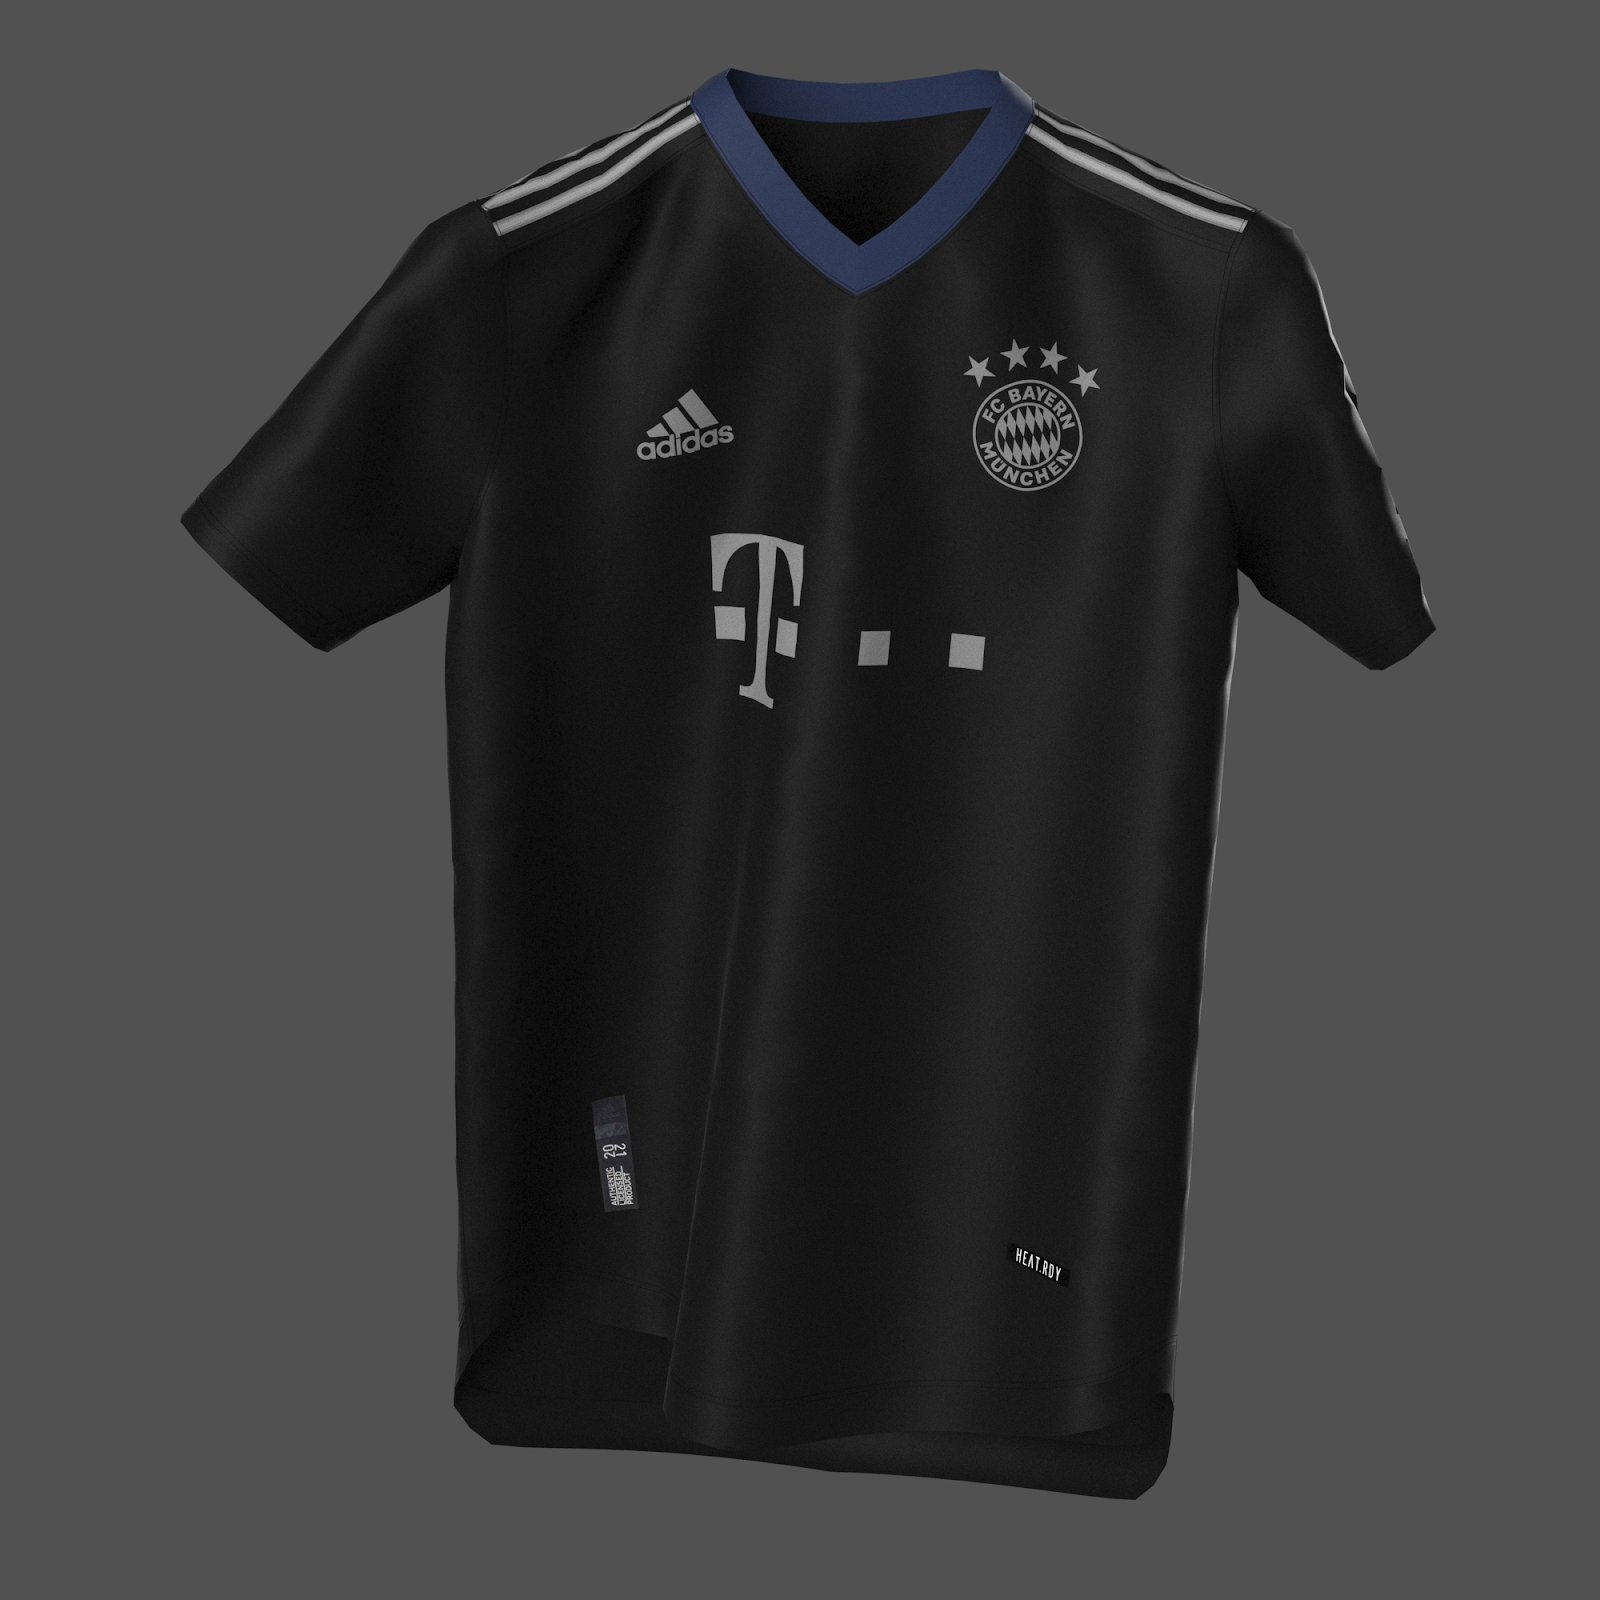 Bayern Munich Kit 2021 22 Bayern Germany On Twitter Prediction Of How The Bayern 2021 22 Home Kit Could Look Like According To The Current Leaks Footy Headlines With An Extensive